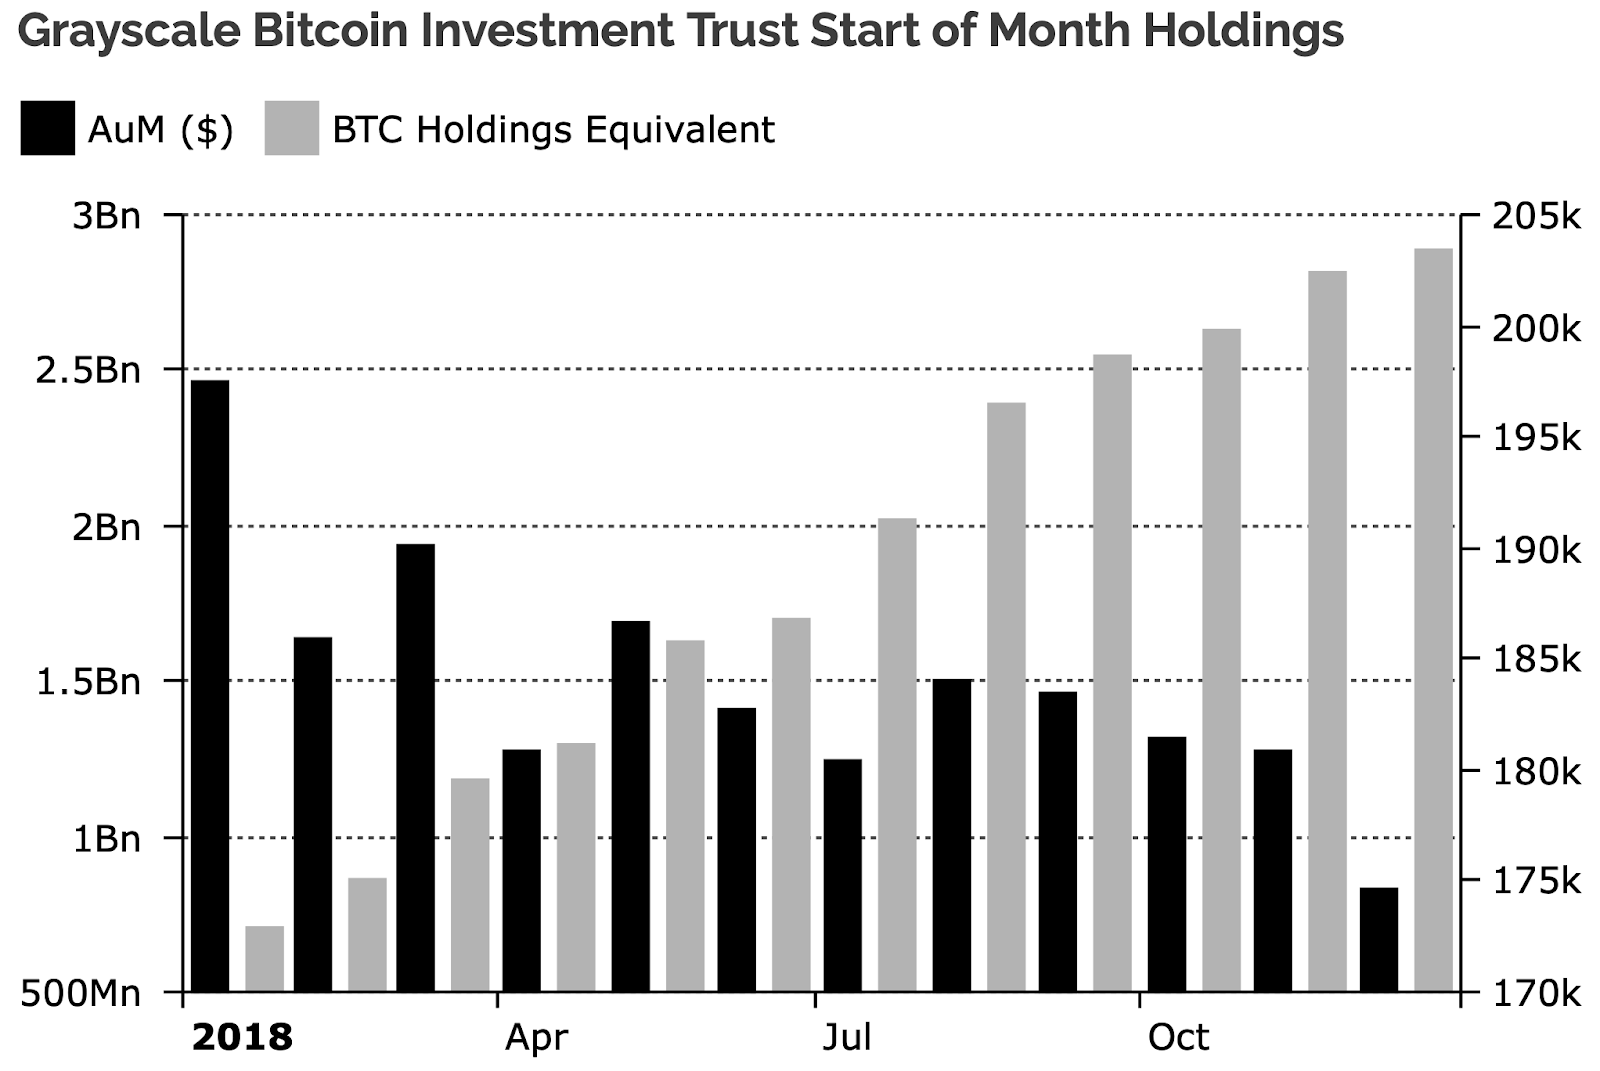 Bitcoin investment trust holdings